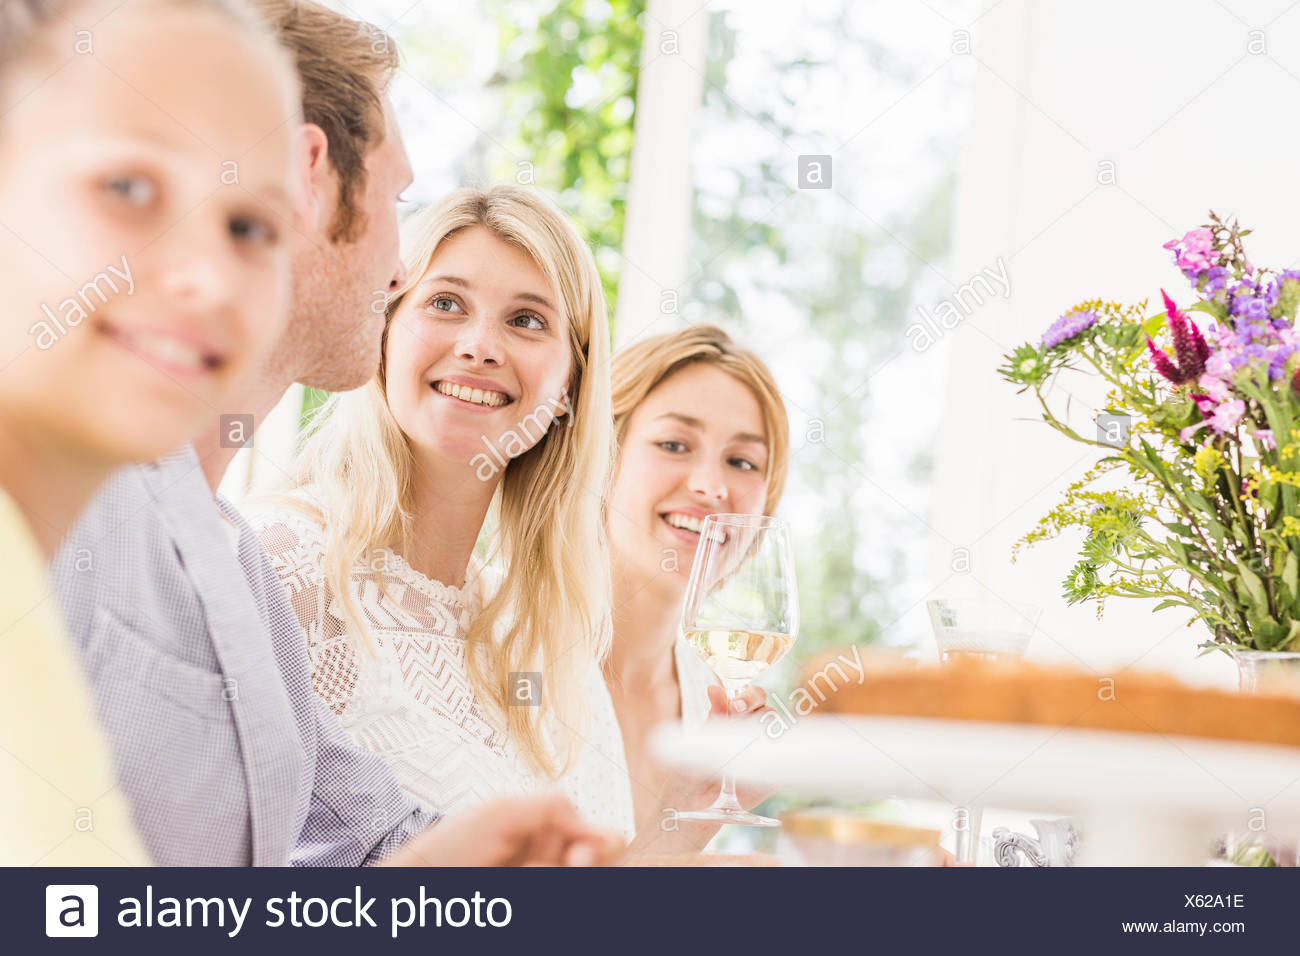 Girl and adults at birthday party - Stock Image